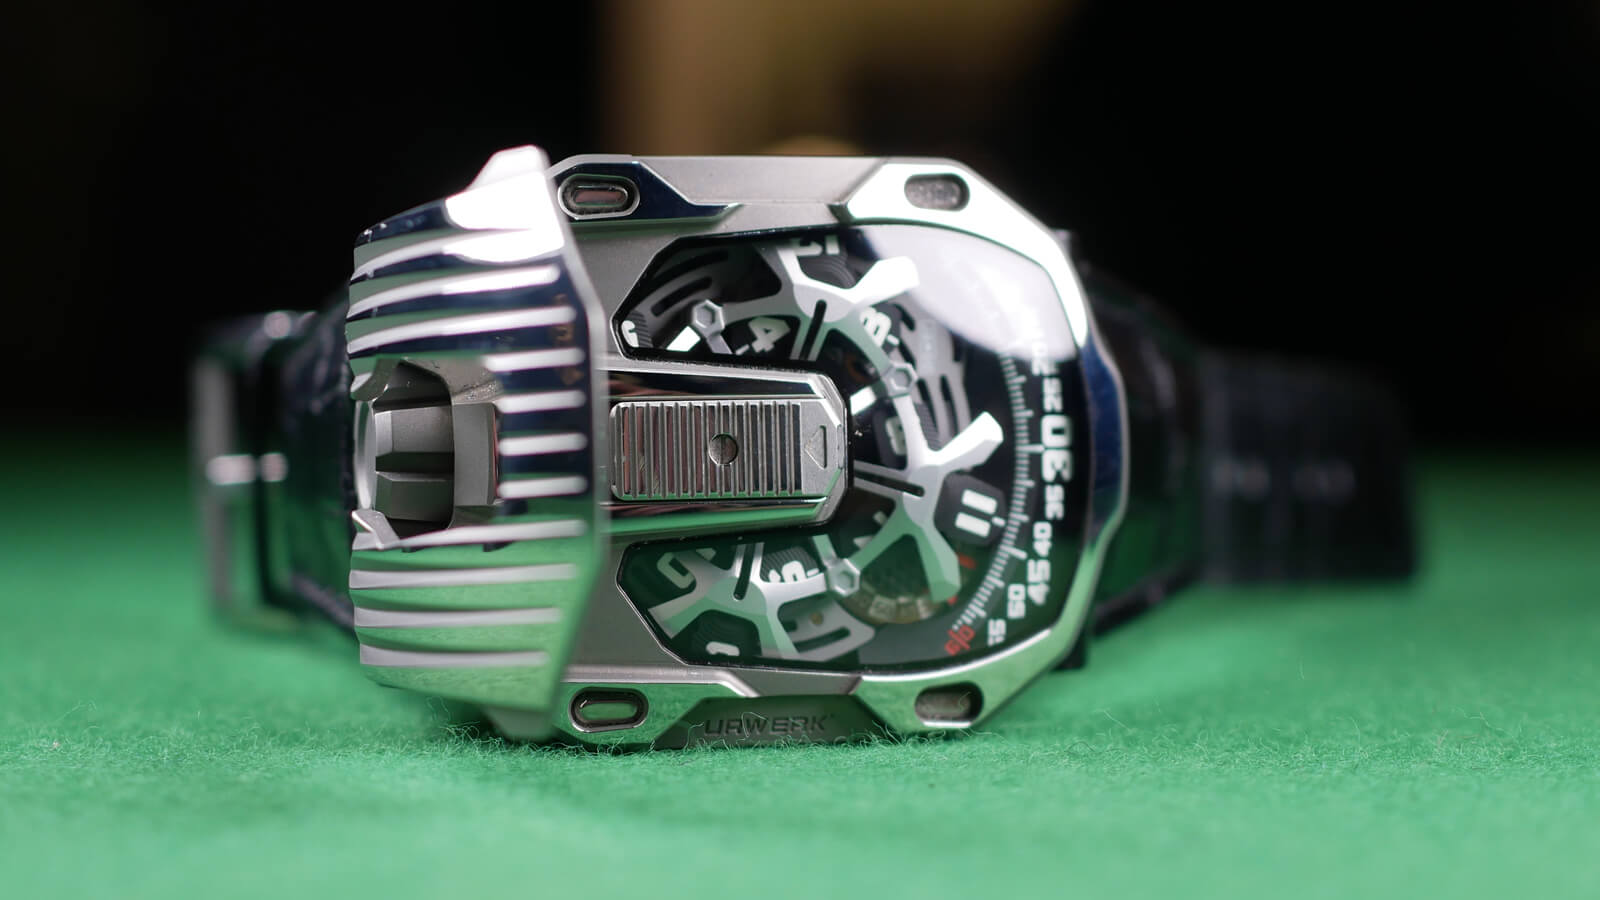 Urwerk UR-105 CT Streamliner - watch featuring wandering hours, minutes, digital seconds and power reserve